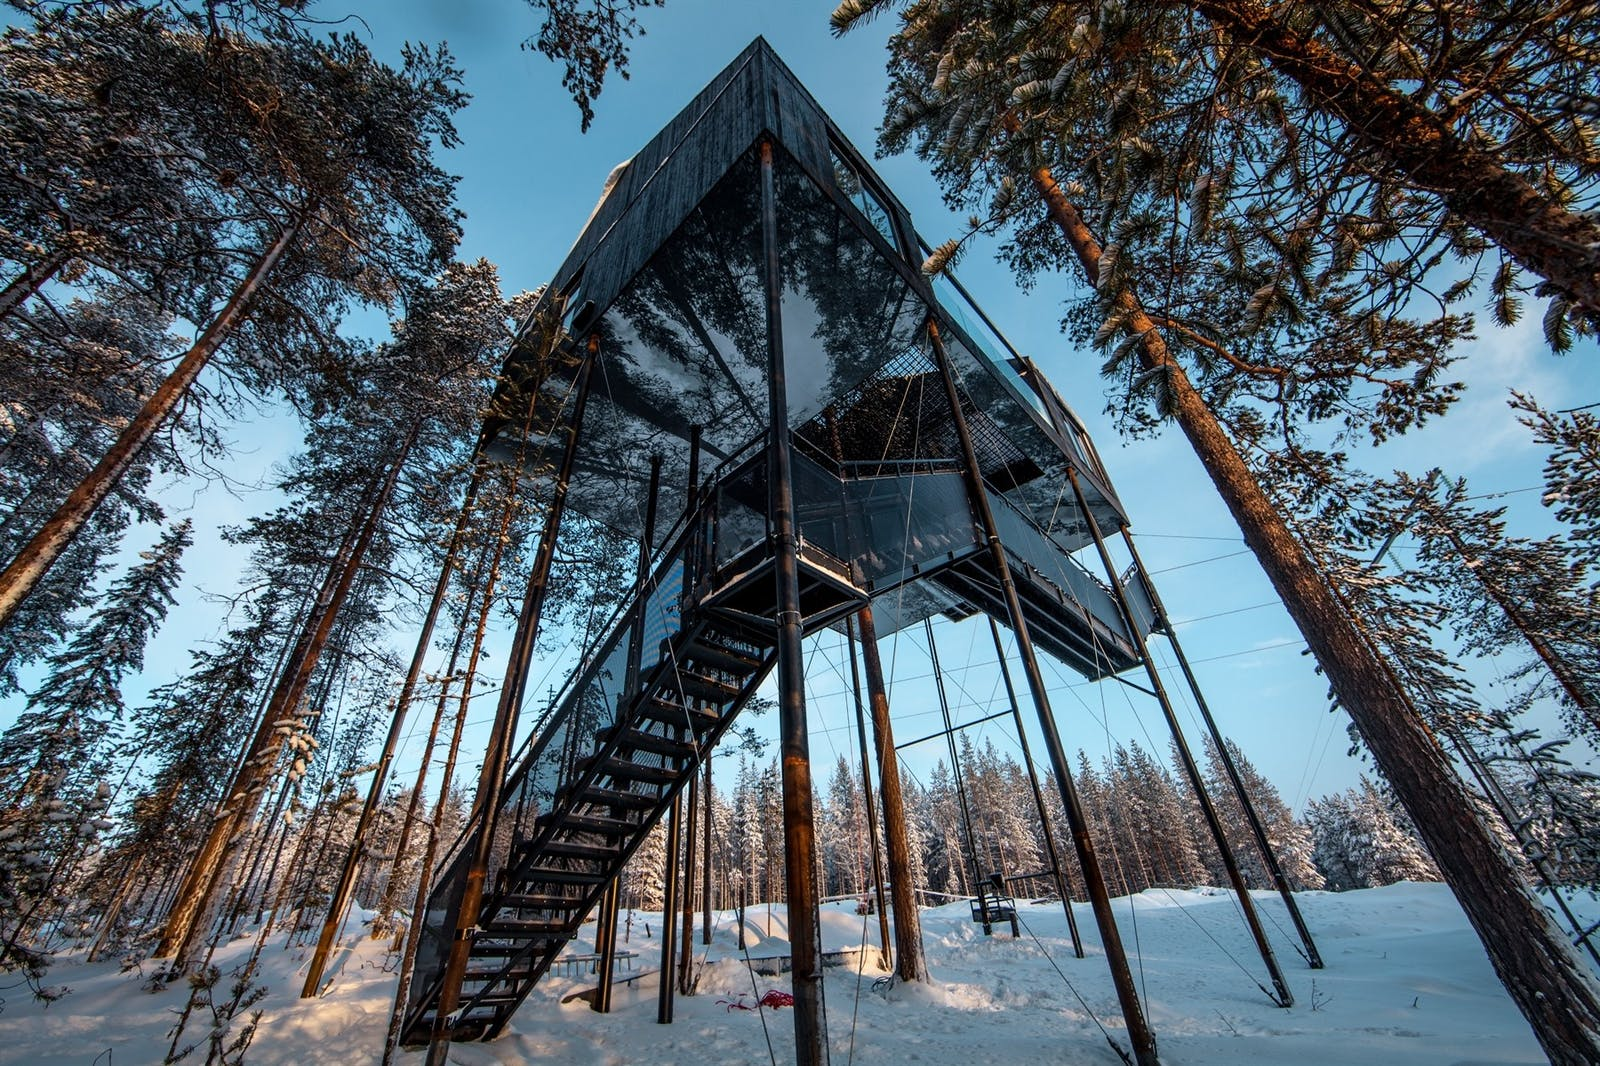 Unique accommodation at Treehotel, Sweden